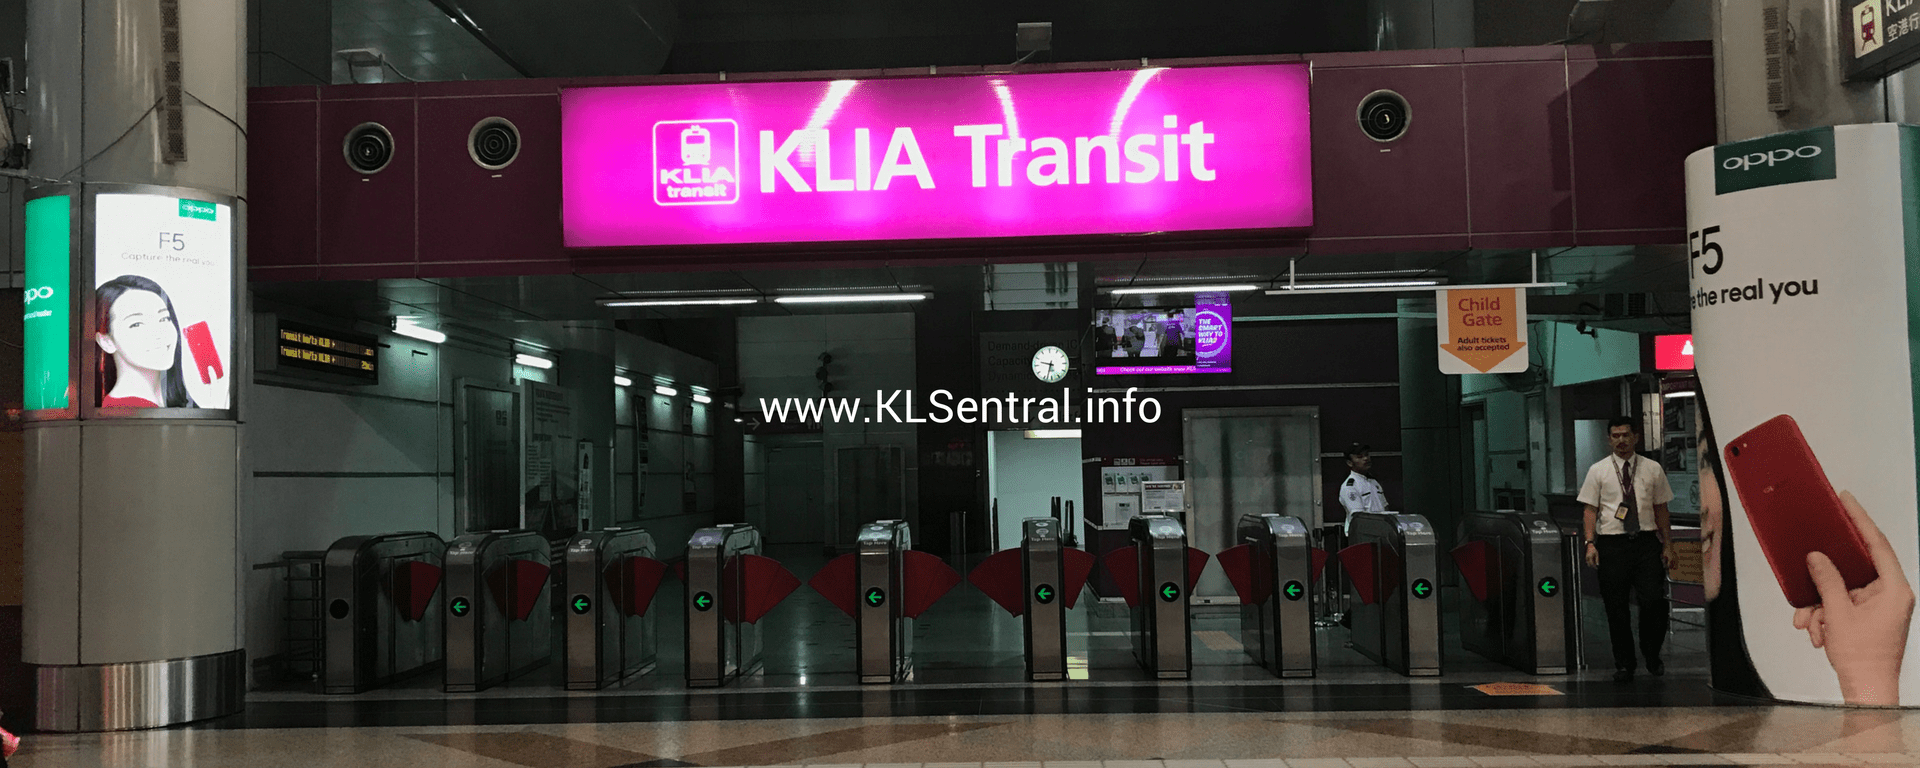 KL-transit-station-entrance-KL-sentral